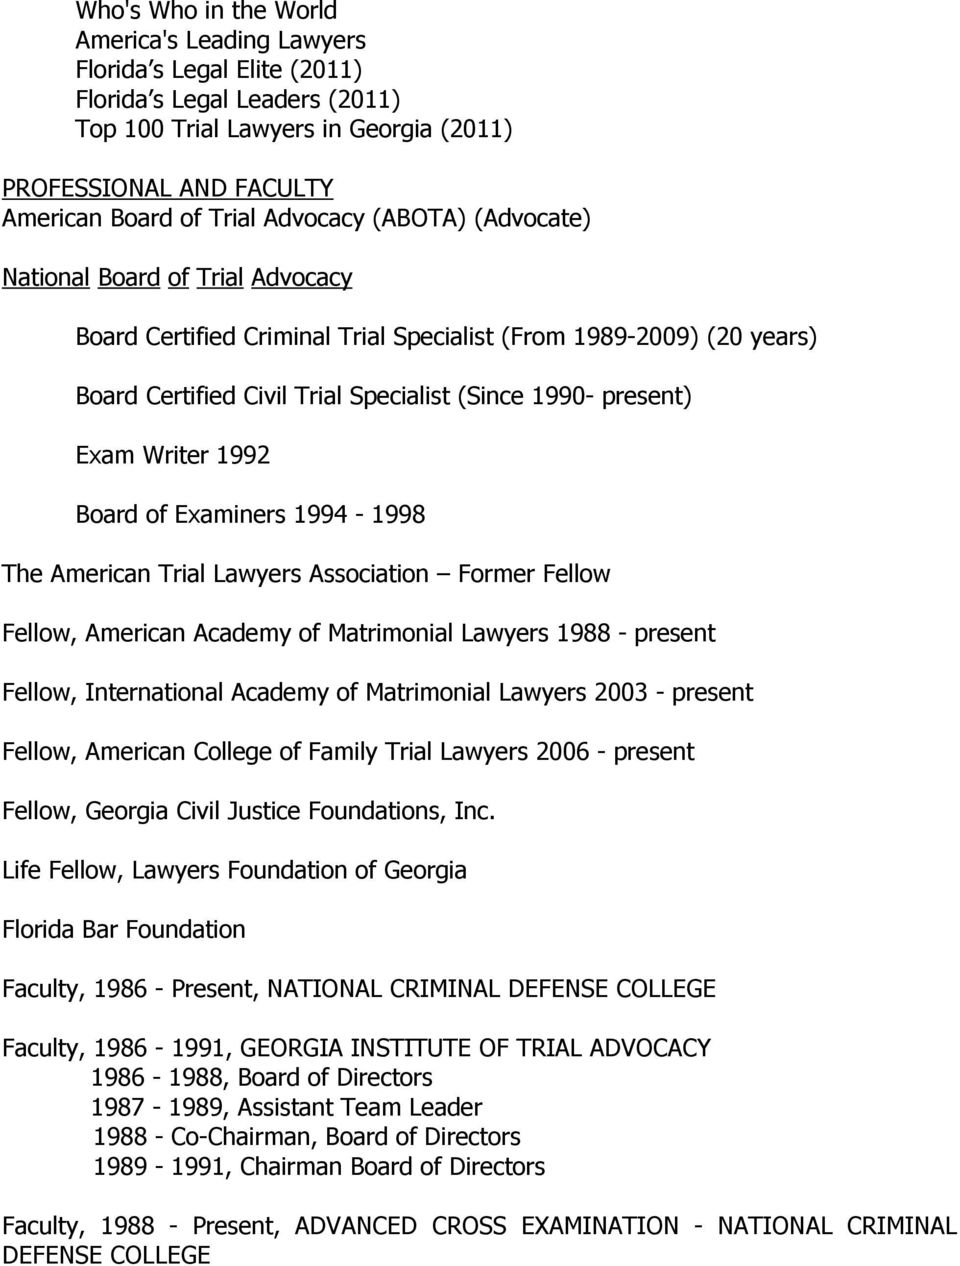 Writer 1992 Board of Examiners 1994-1998 The American Trial Lawyers Association Former Fellow Fellow, American Academy of Matrimonial Lawyers 1988 - present Fellow, International Academy of